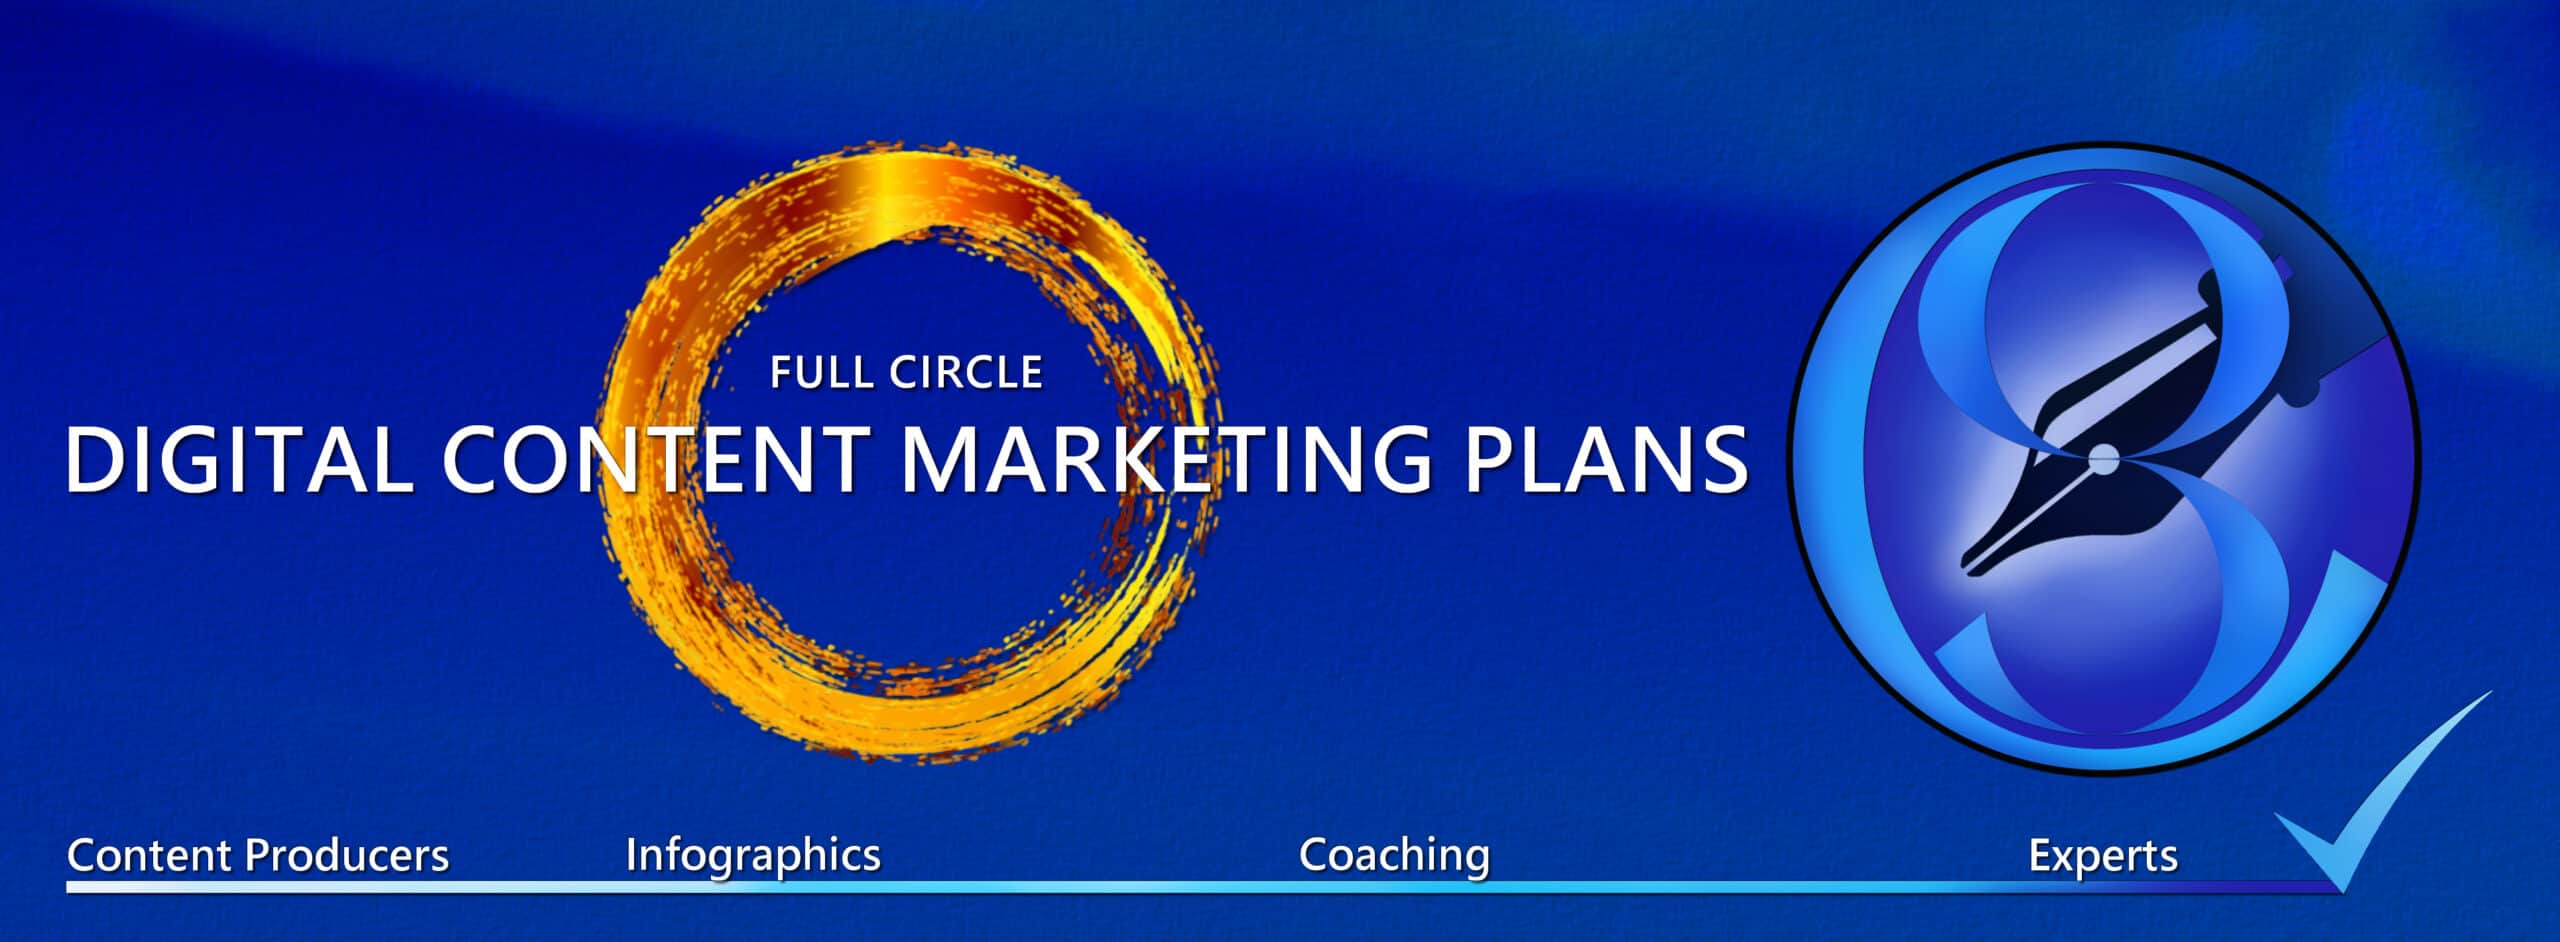 Find Out more about Content Branding Solutions, Content Marketing Plans, and Digital Content Marketing Plans